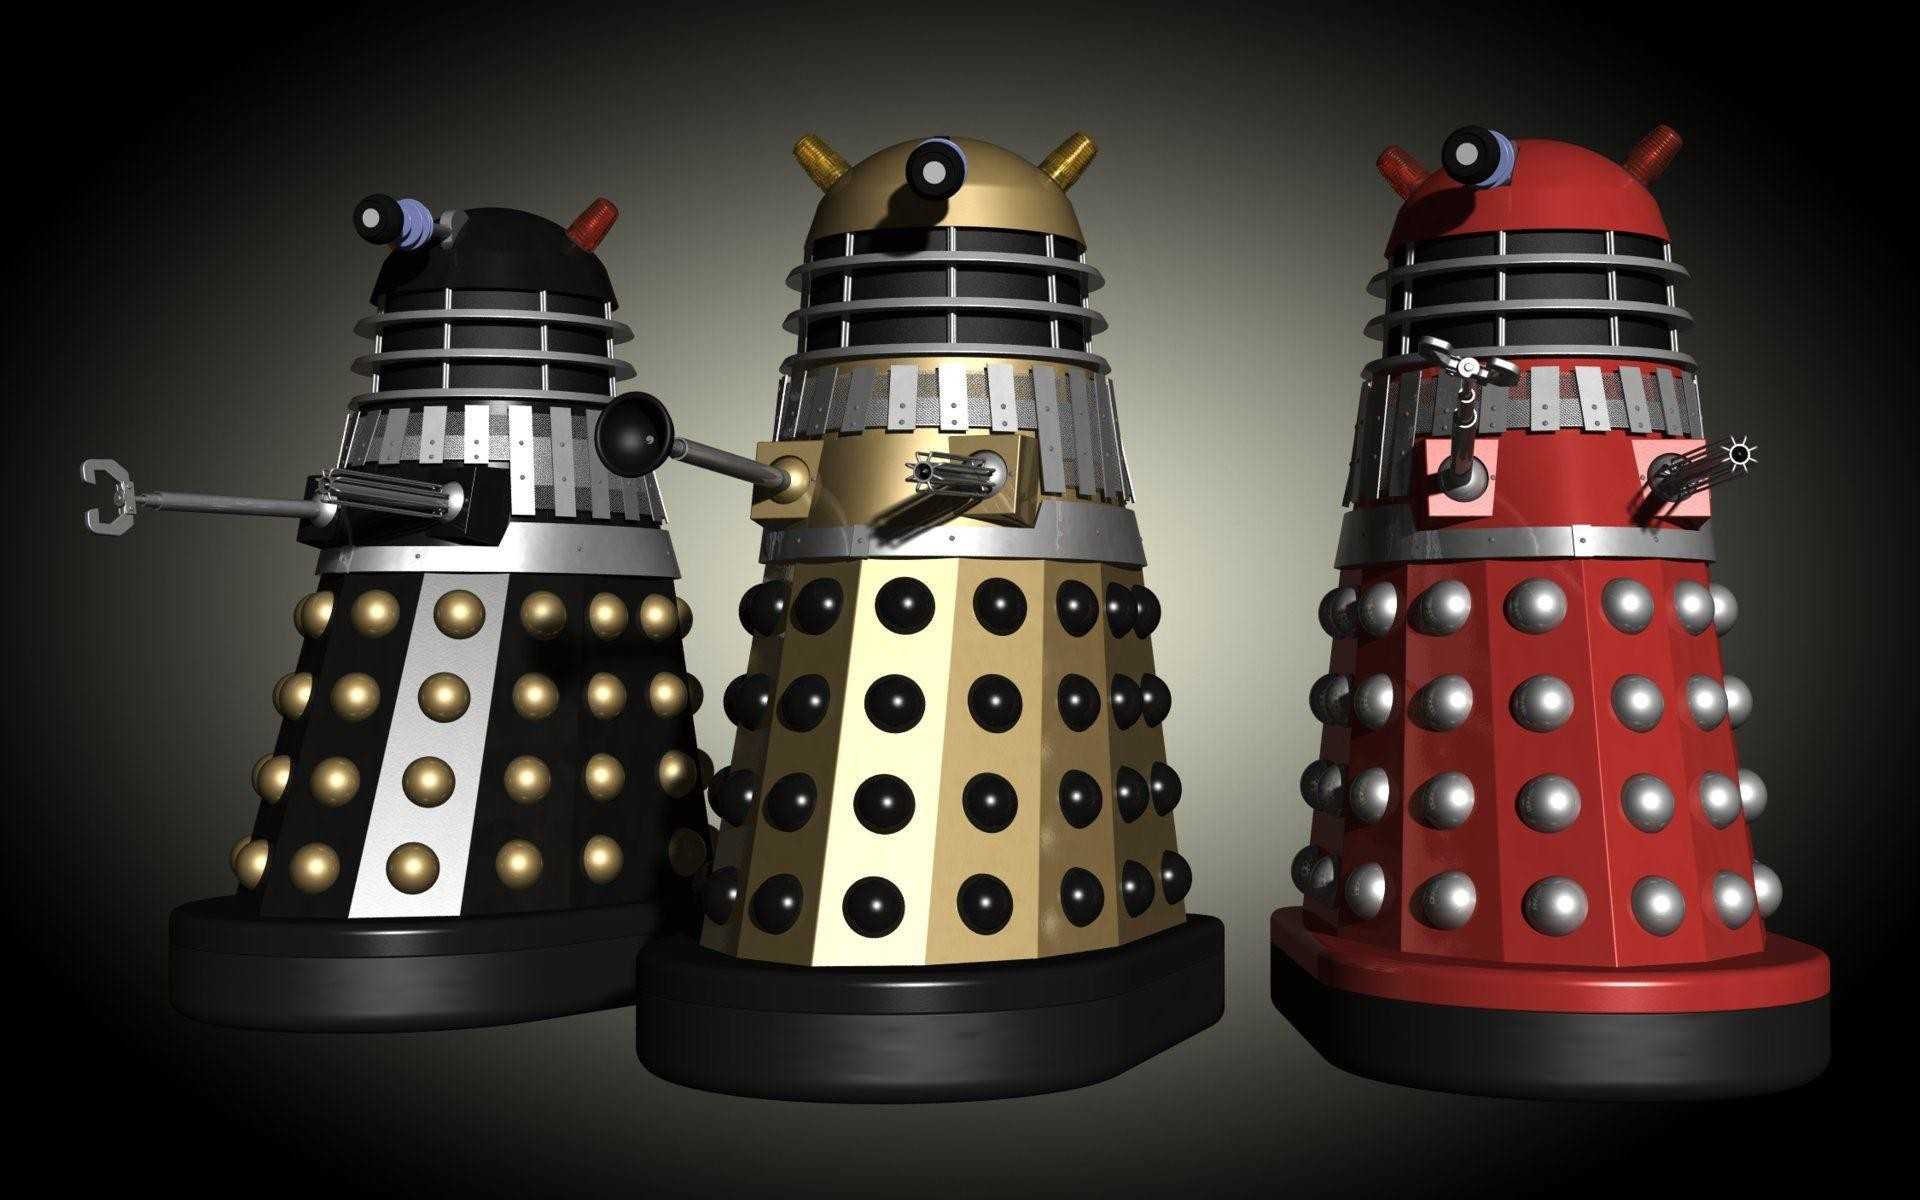 1920x1200 Doctor Who Wallpaper Dalek wallpaper - 498757